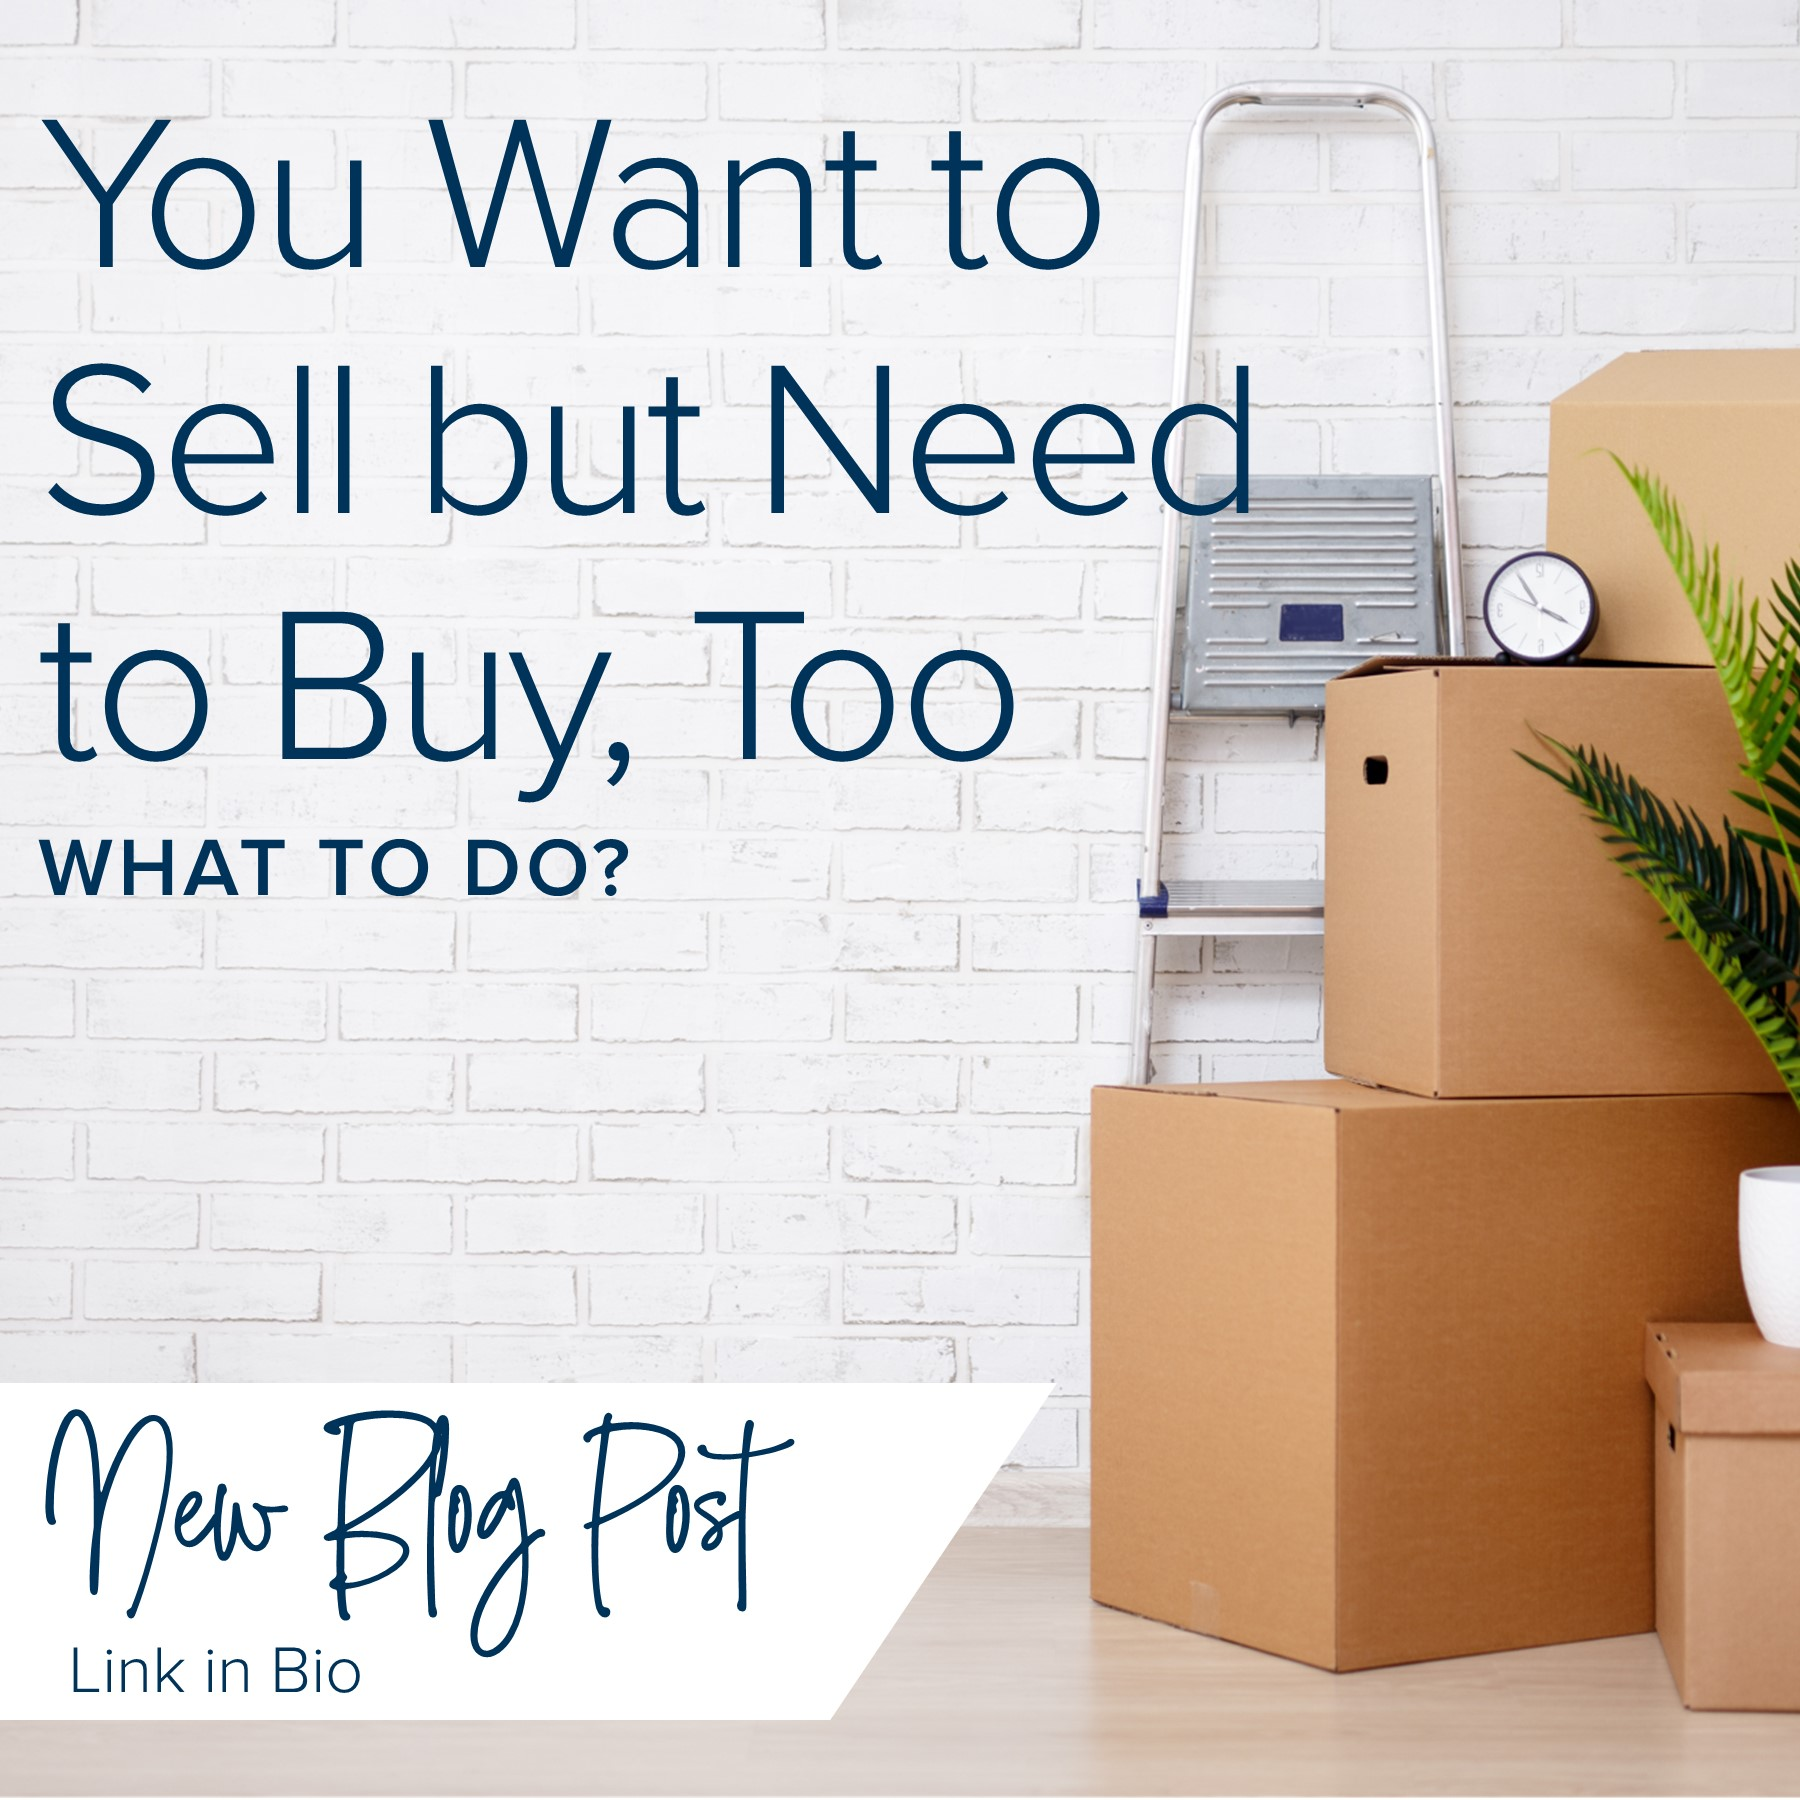 You Want to Sell, but Need to Buy, too: What to do?